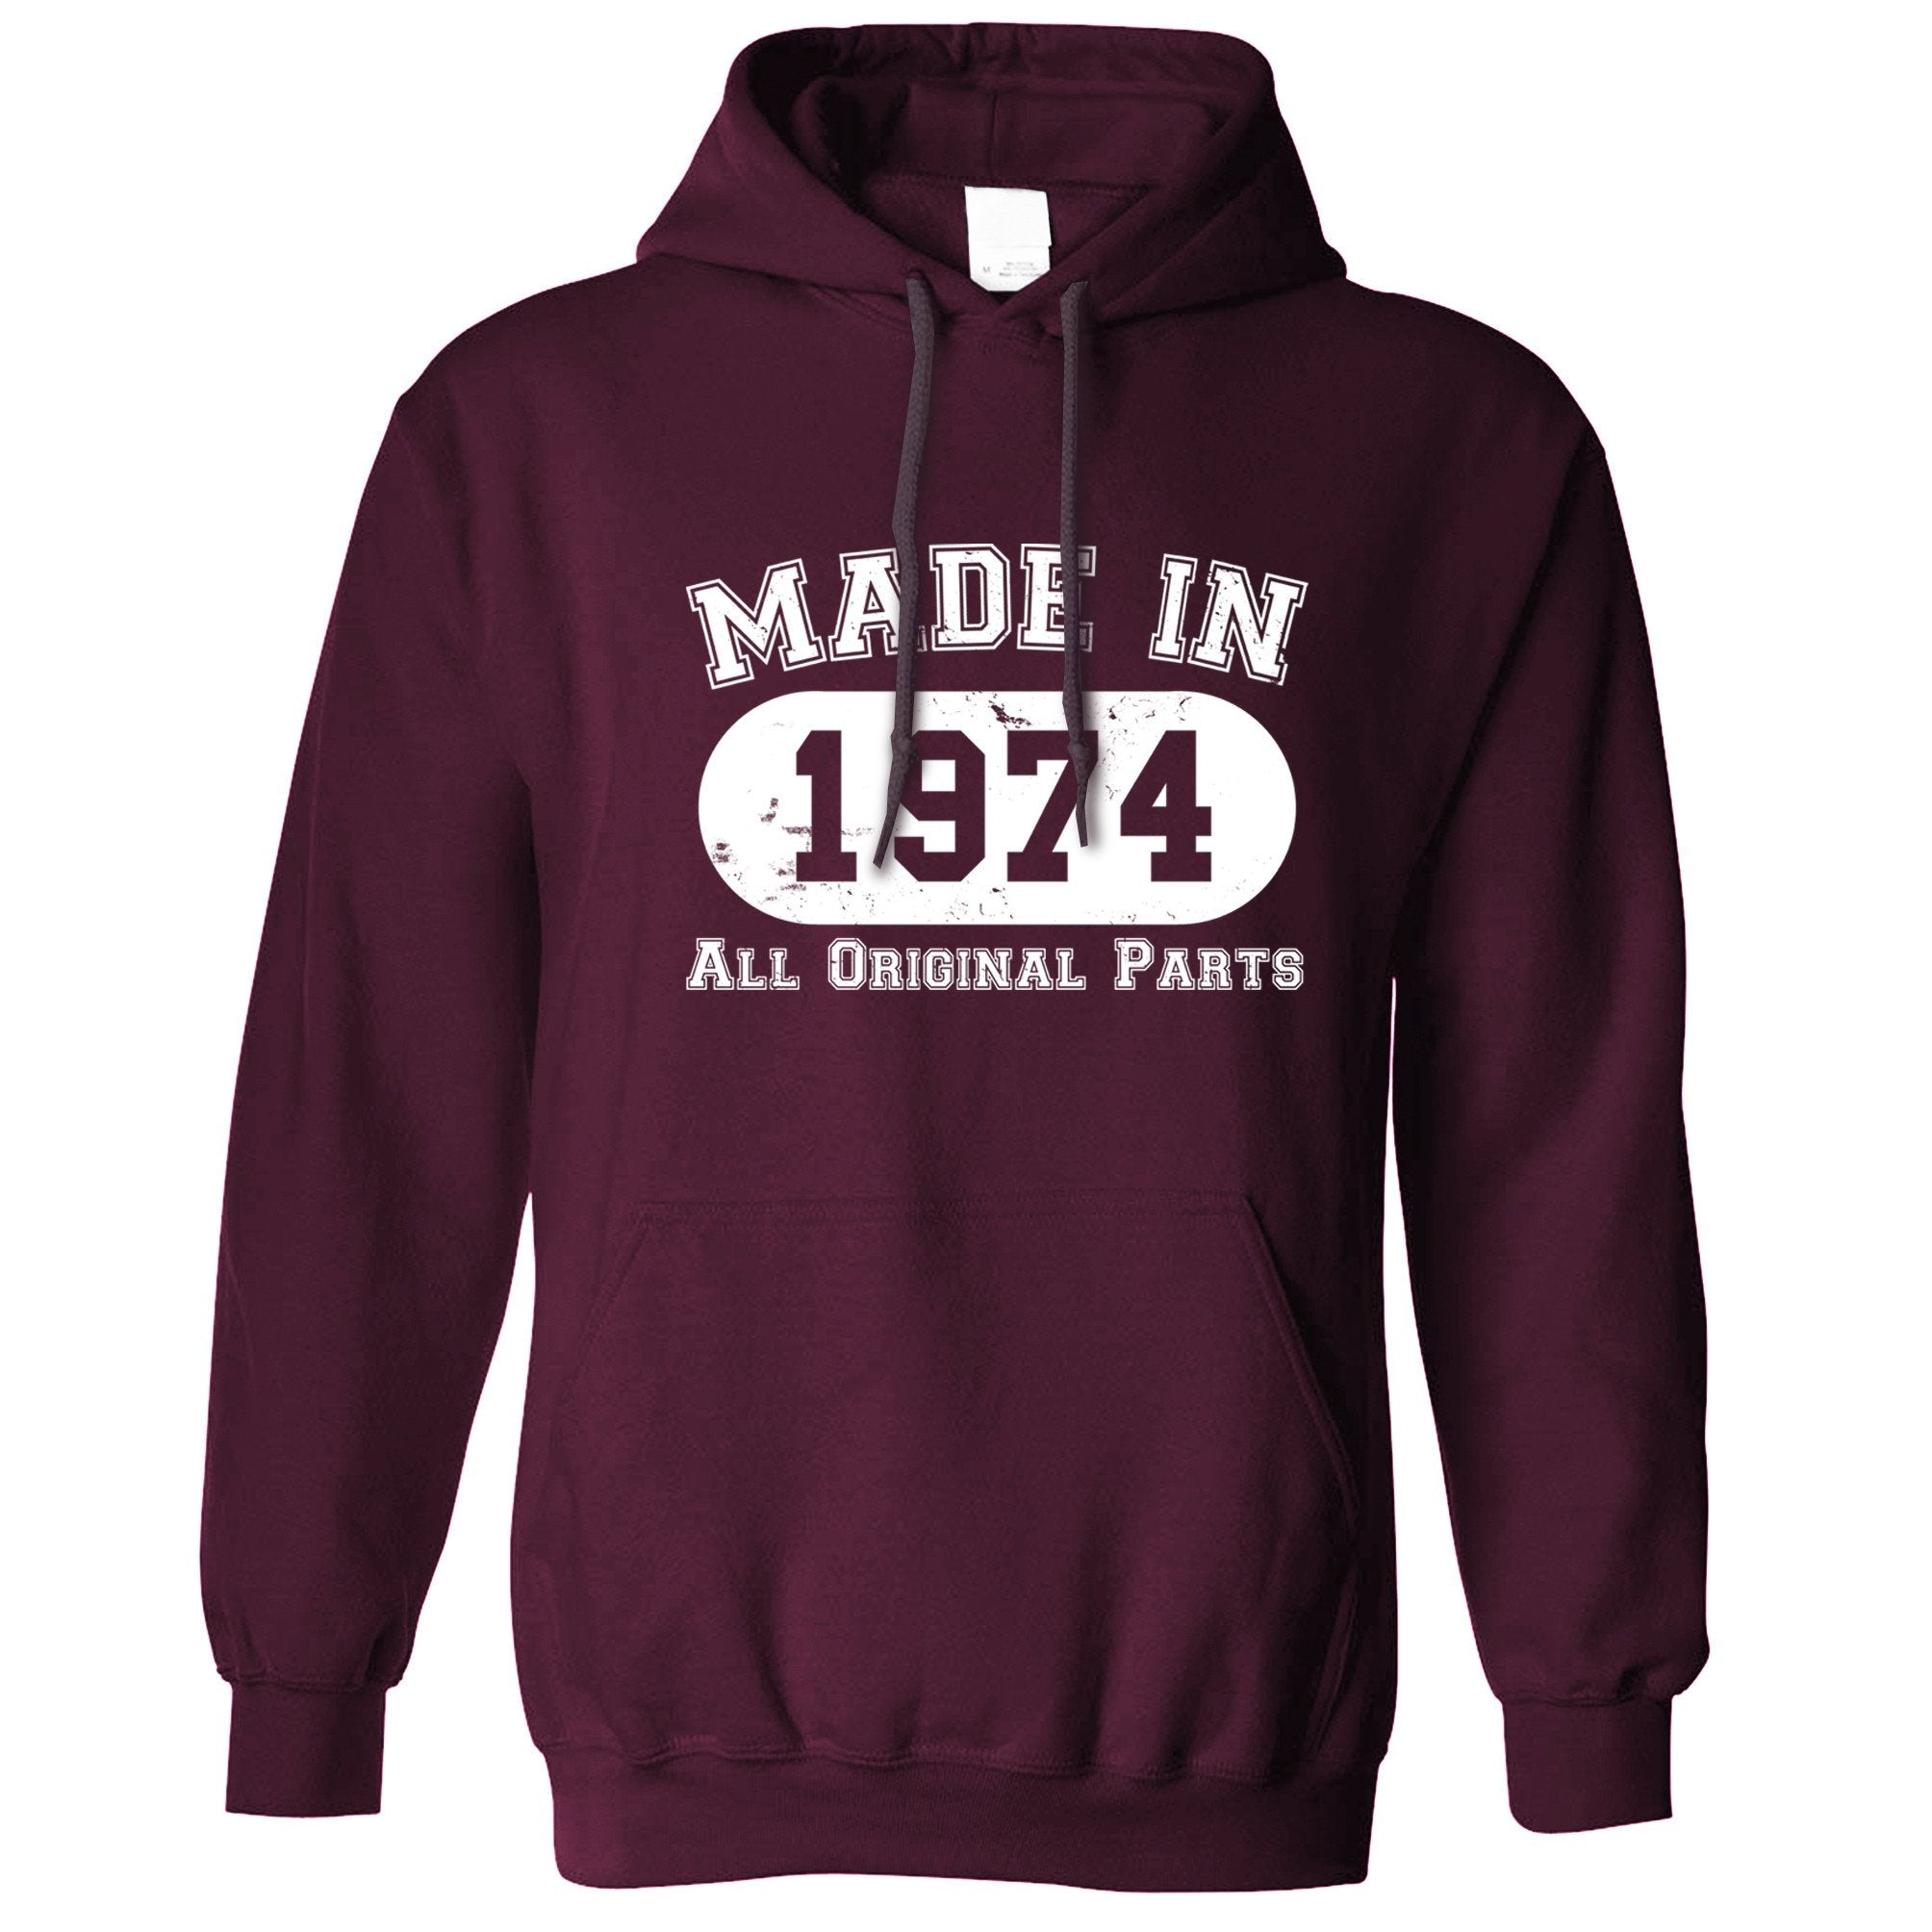 Made in 1974 All Original Parts Hoodie [Distressed]